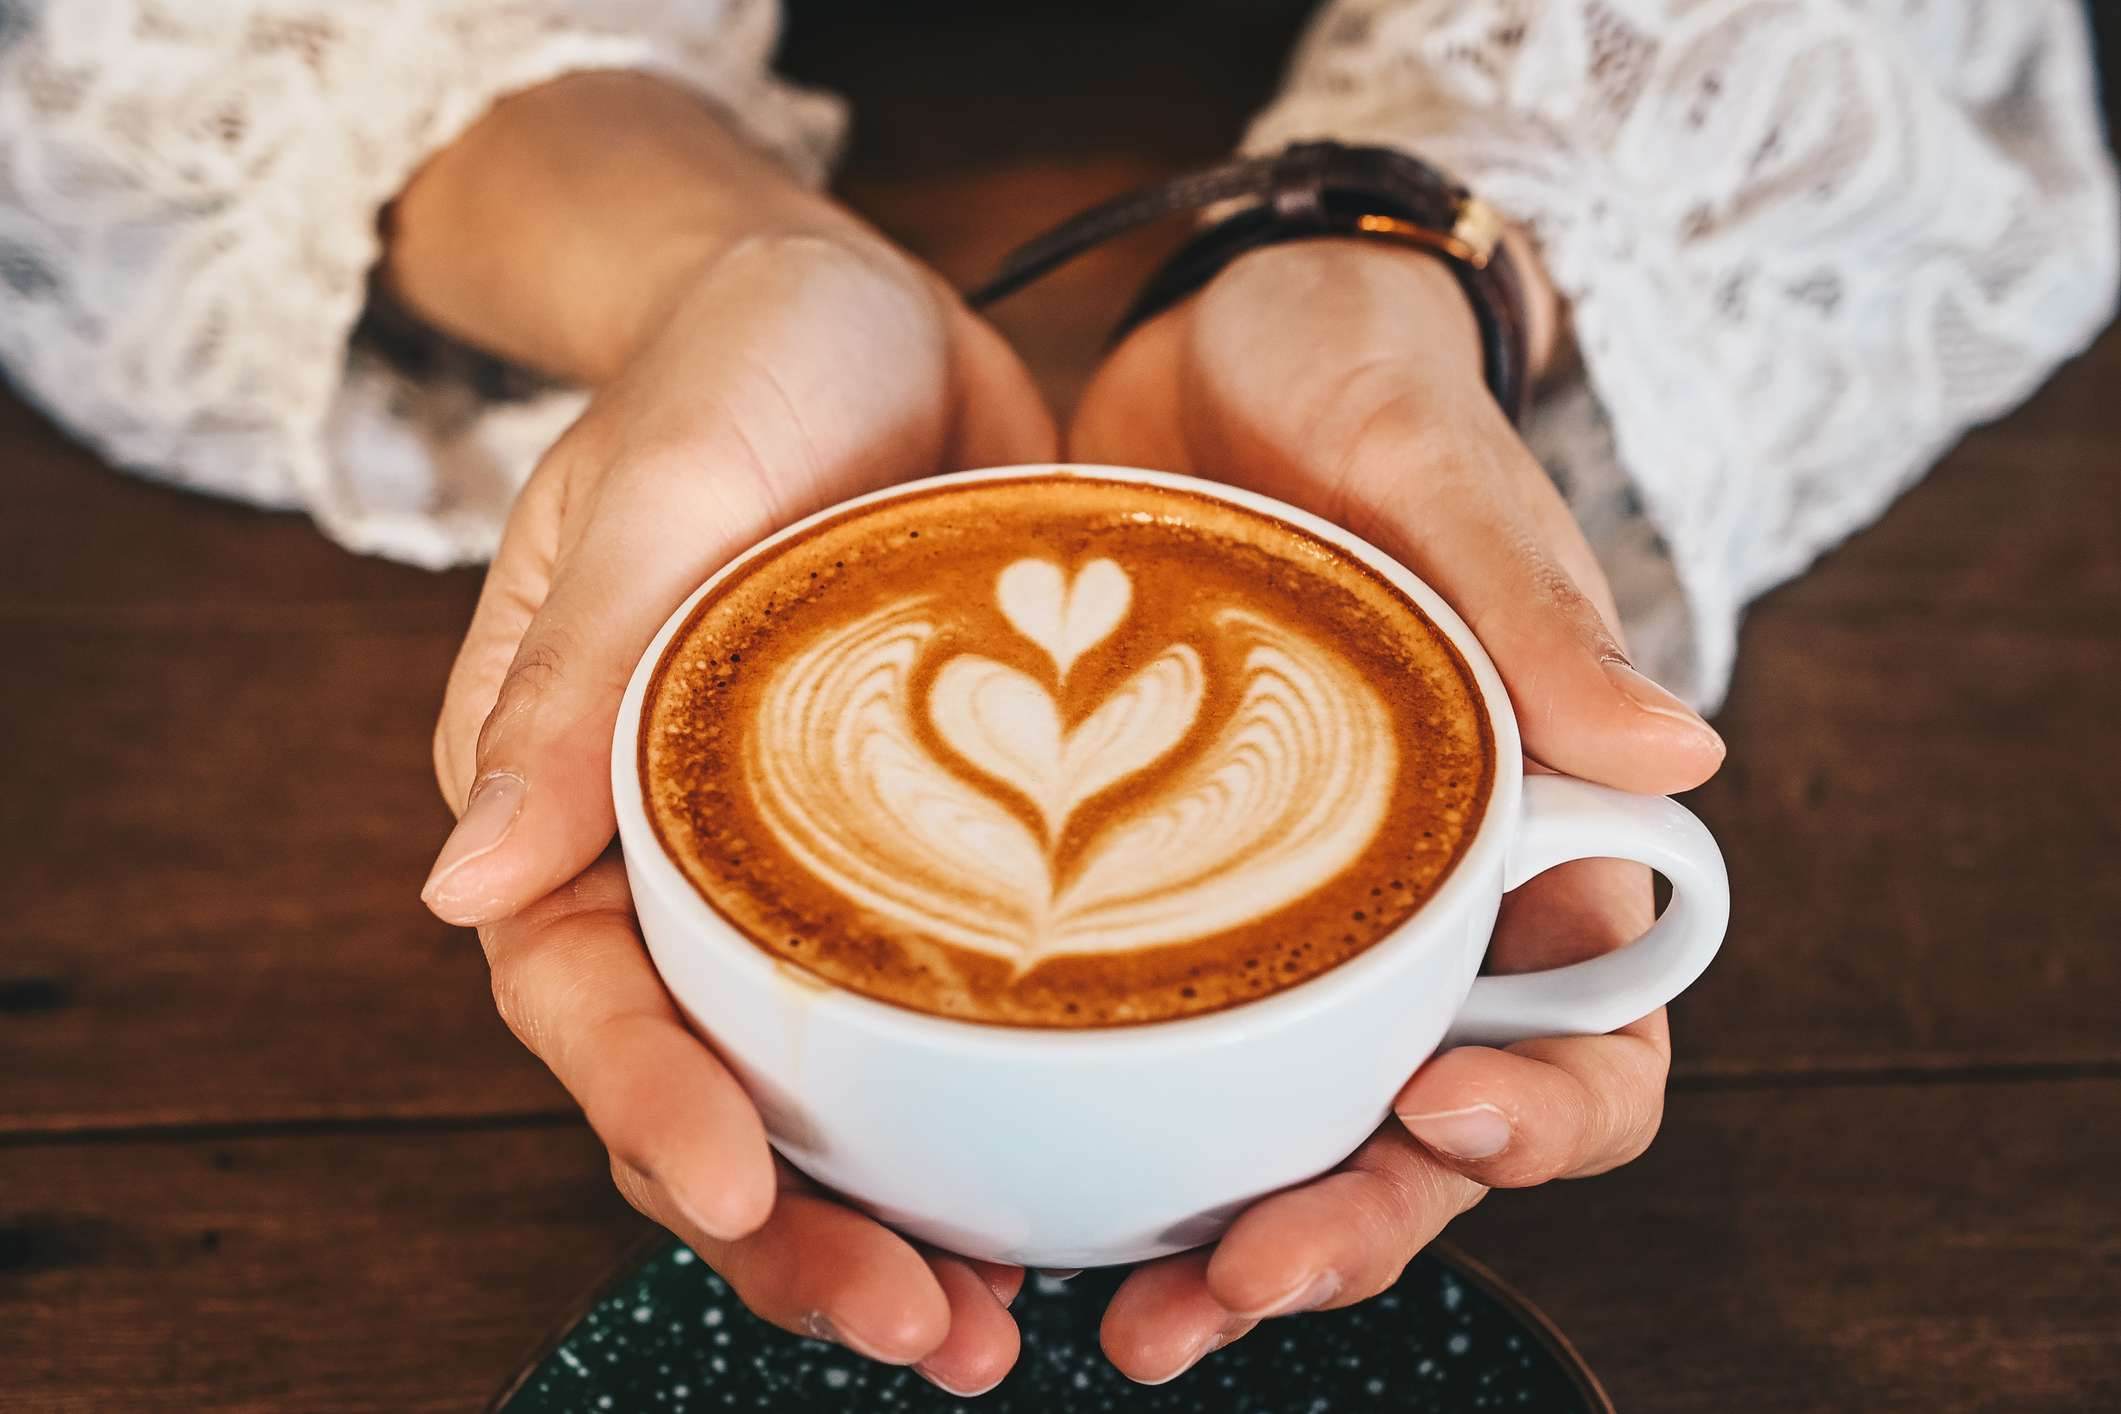 Cropped shot of woman hands holding a cup of hot latte coffee in her hands